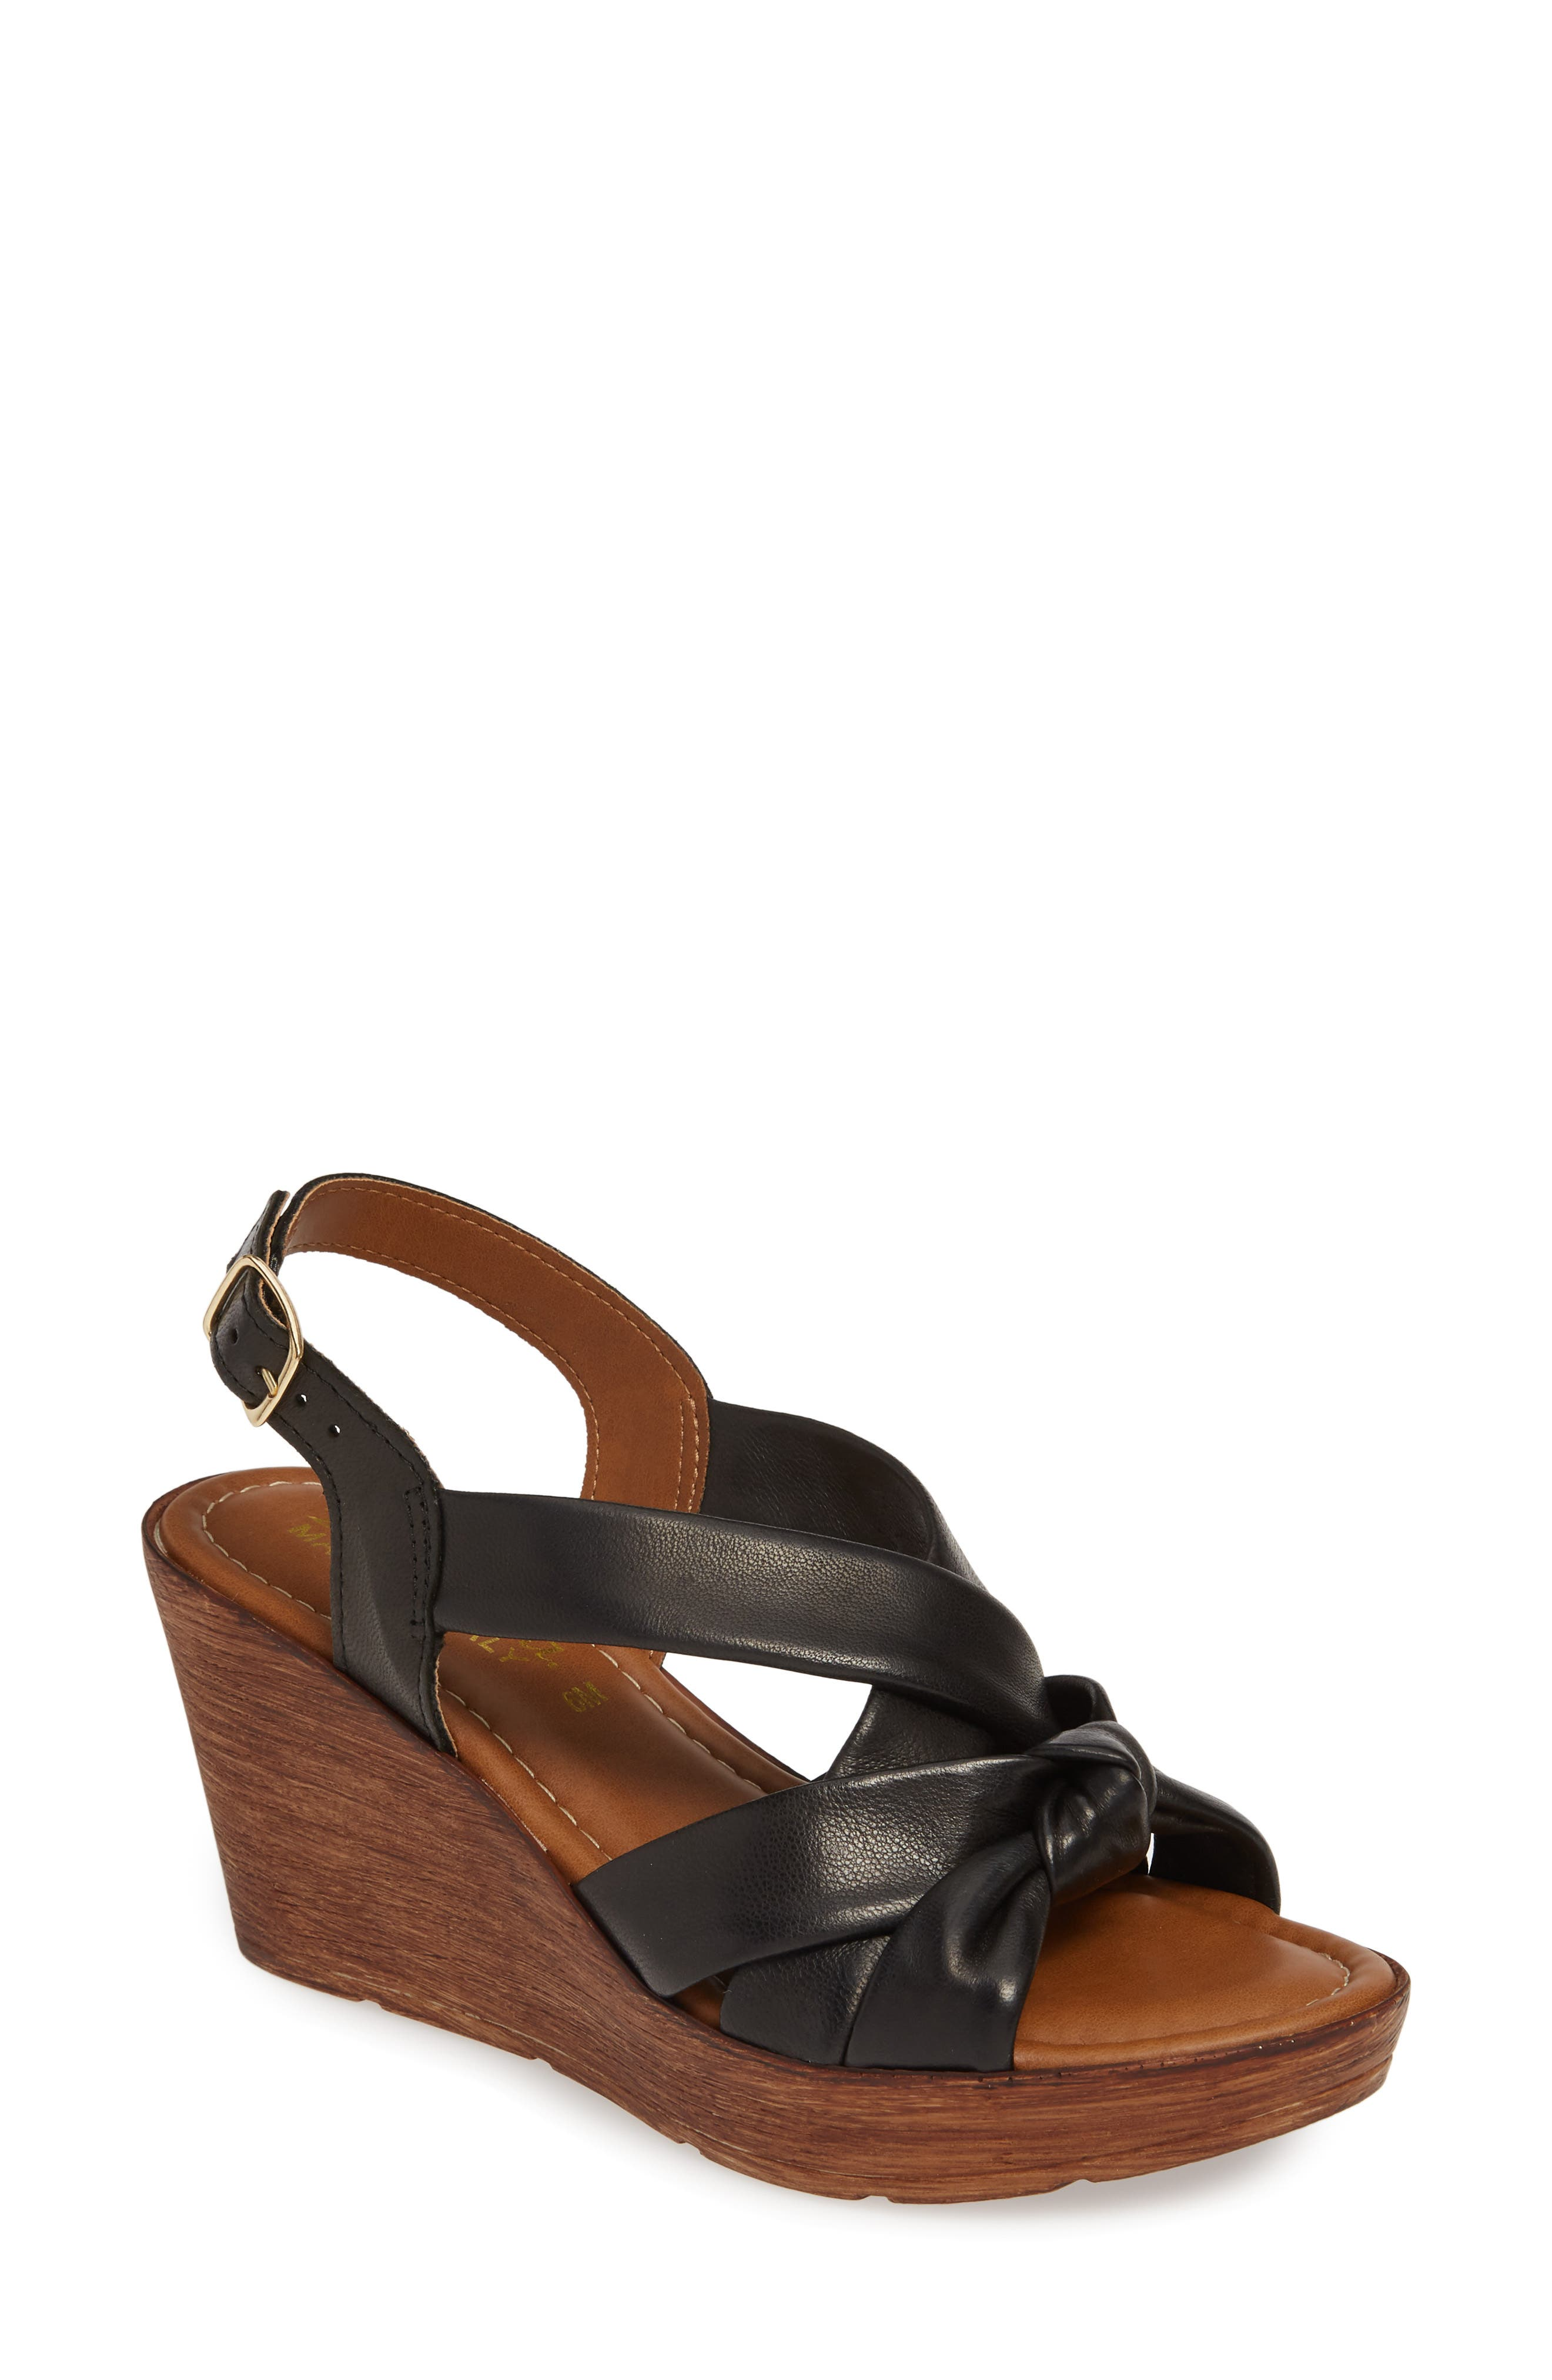 Italy Wedge Sandal by Bella Vita